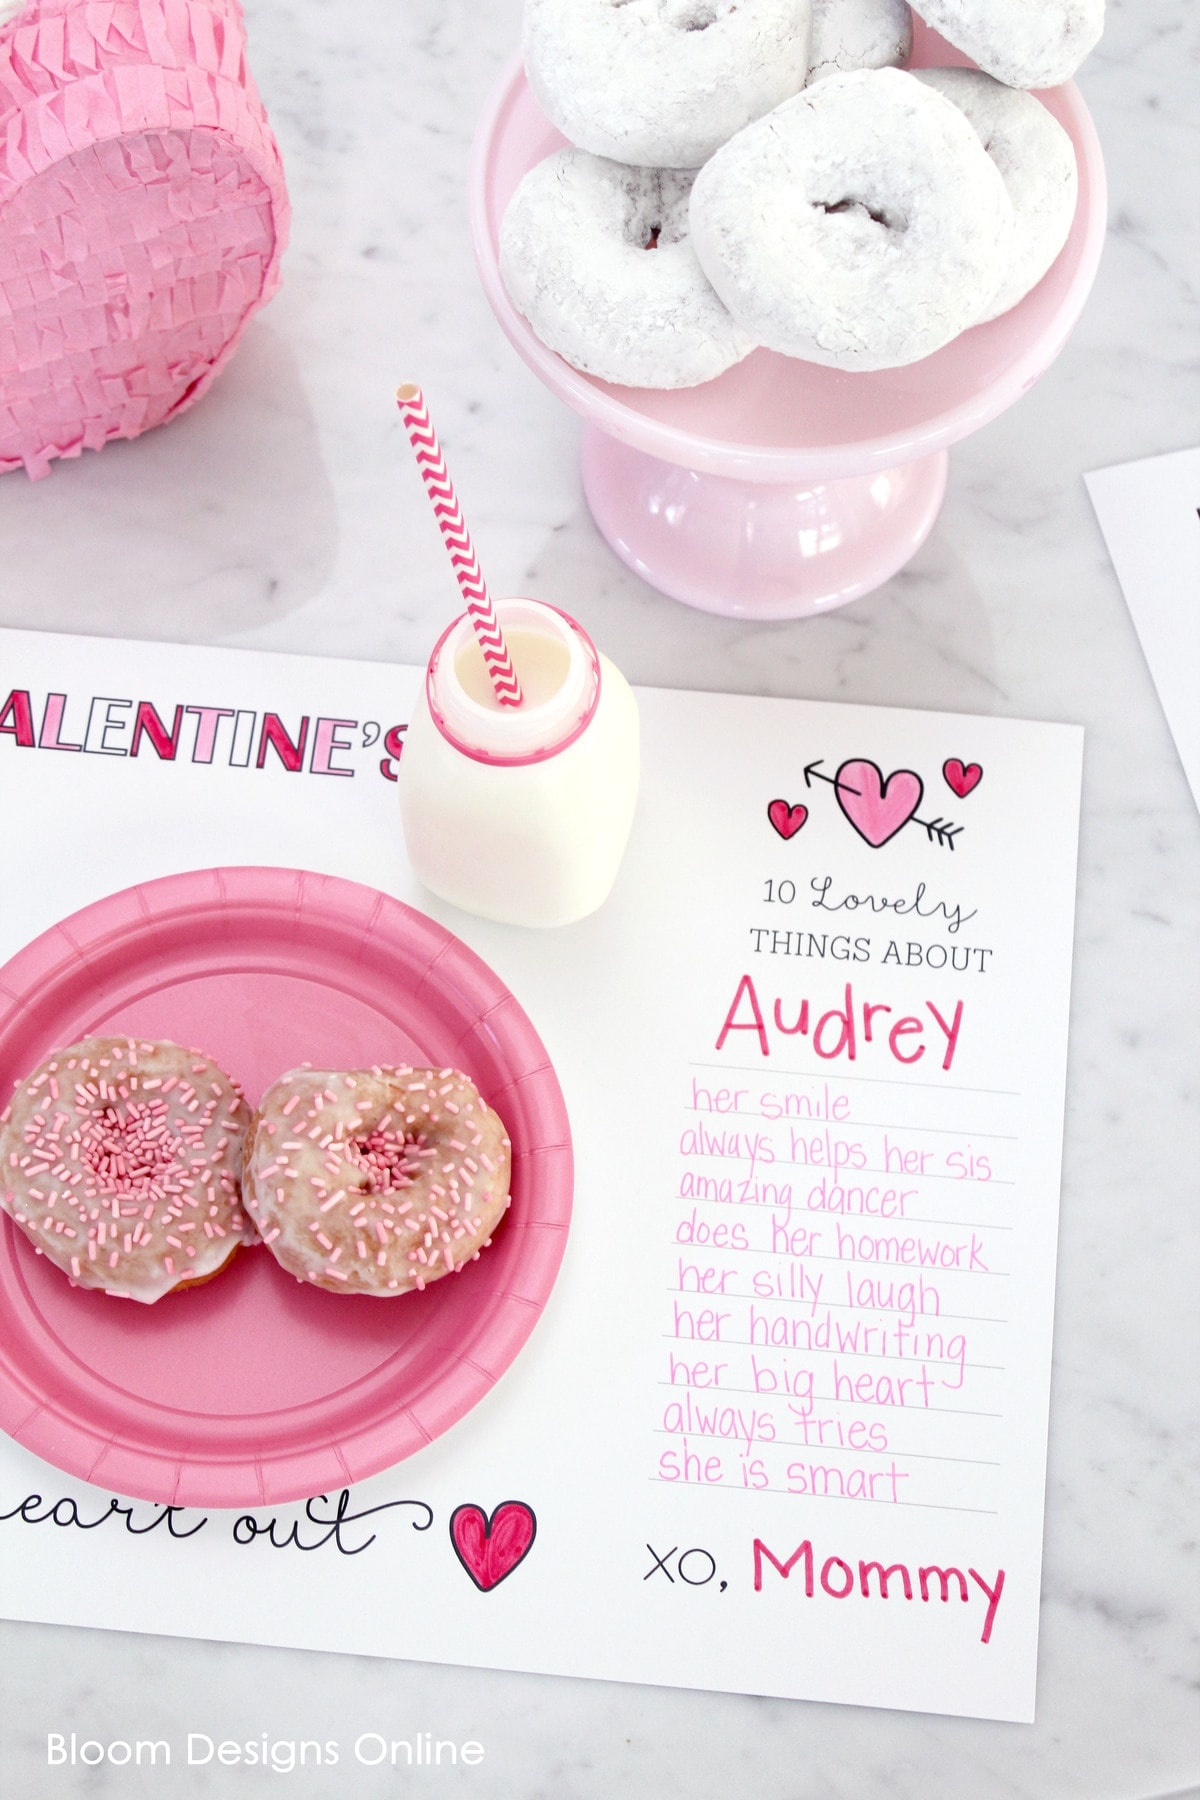 Valentines By Kylie Cosmetics: Printable Valentines Placemat